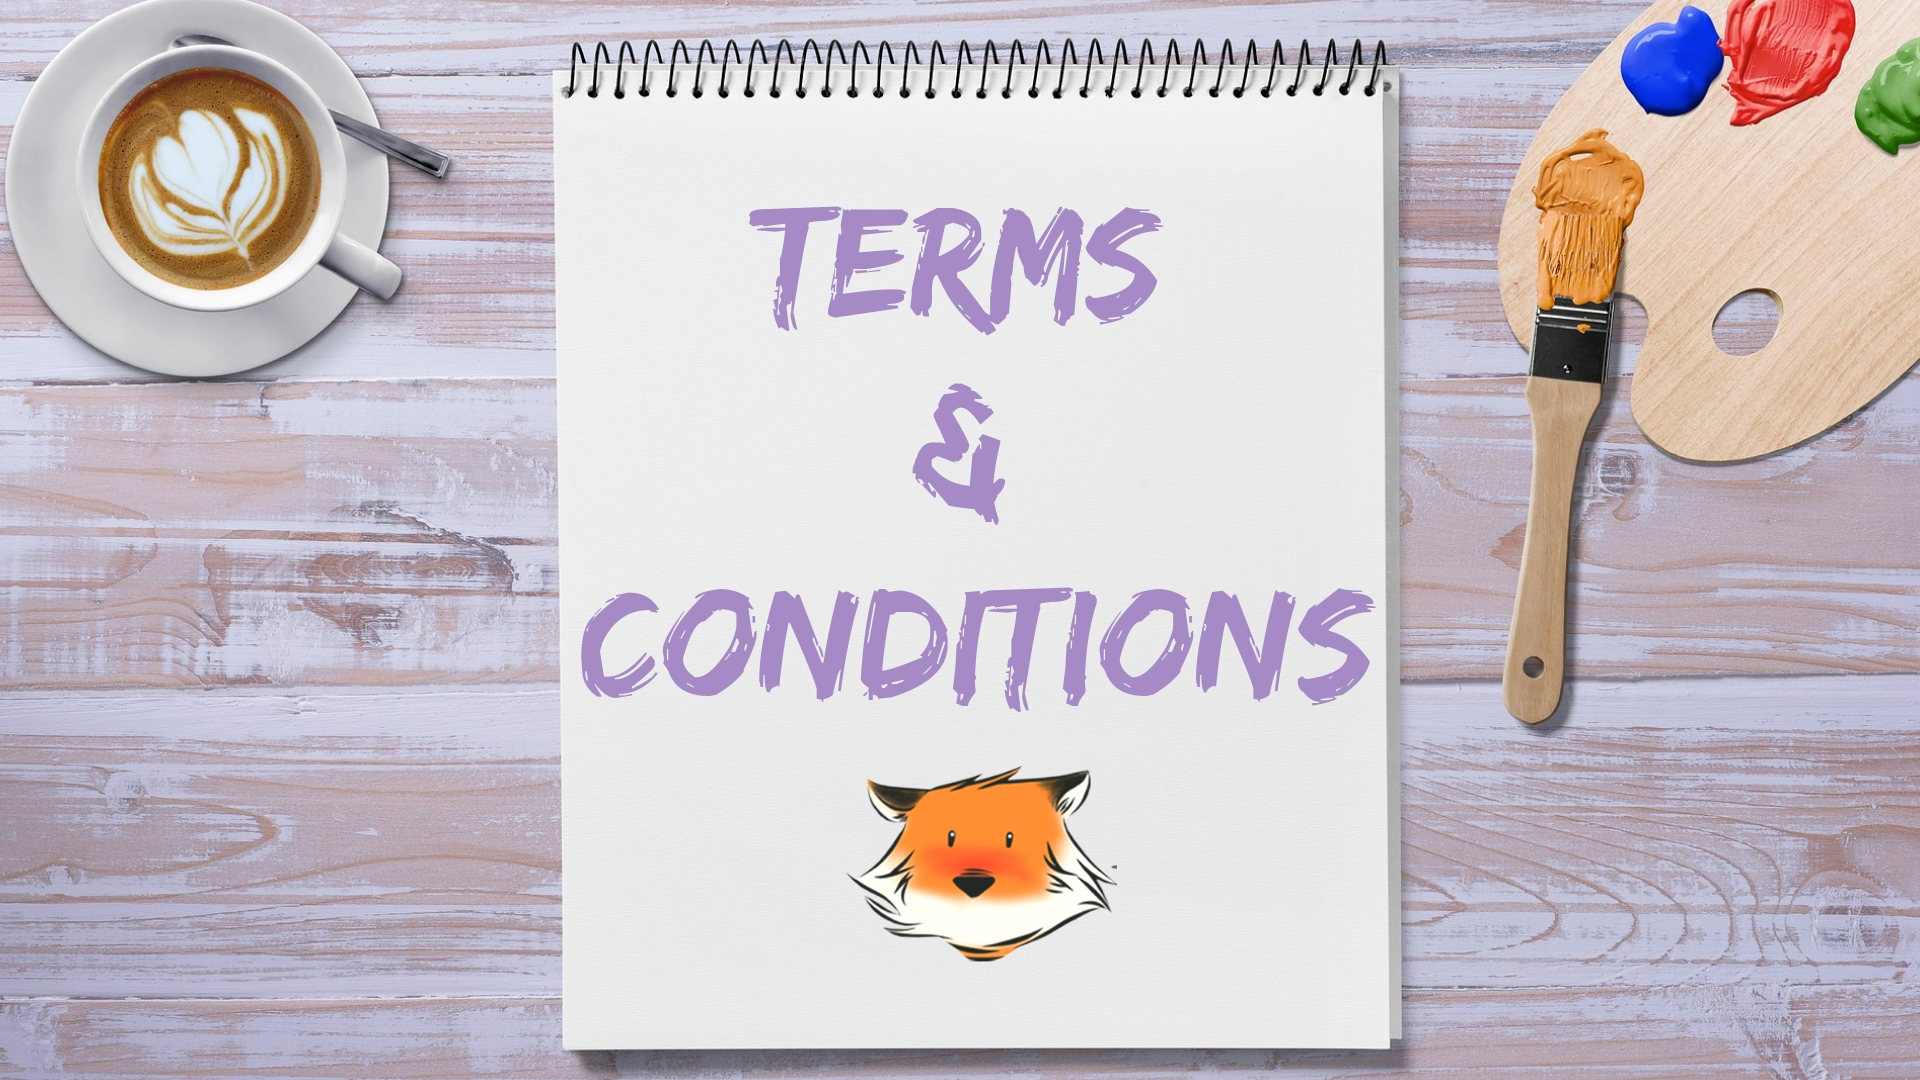 Terms and Conditions for Copy Fox Pro LLC by Laurrel Allison